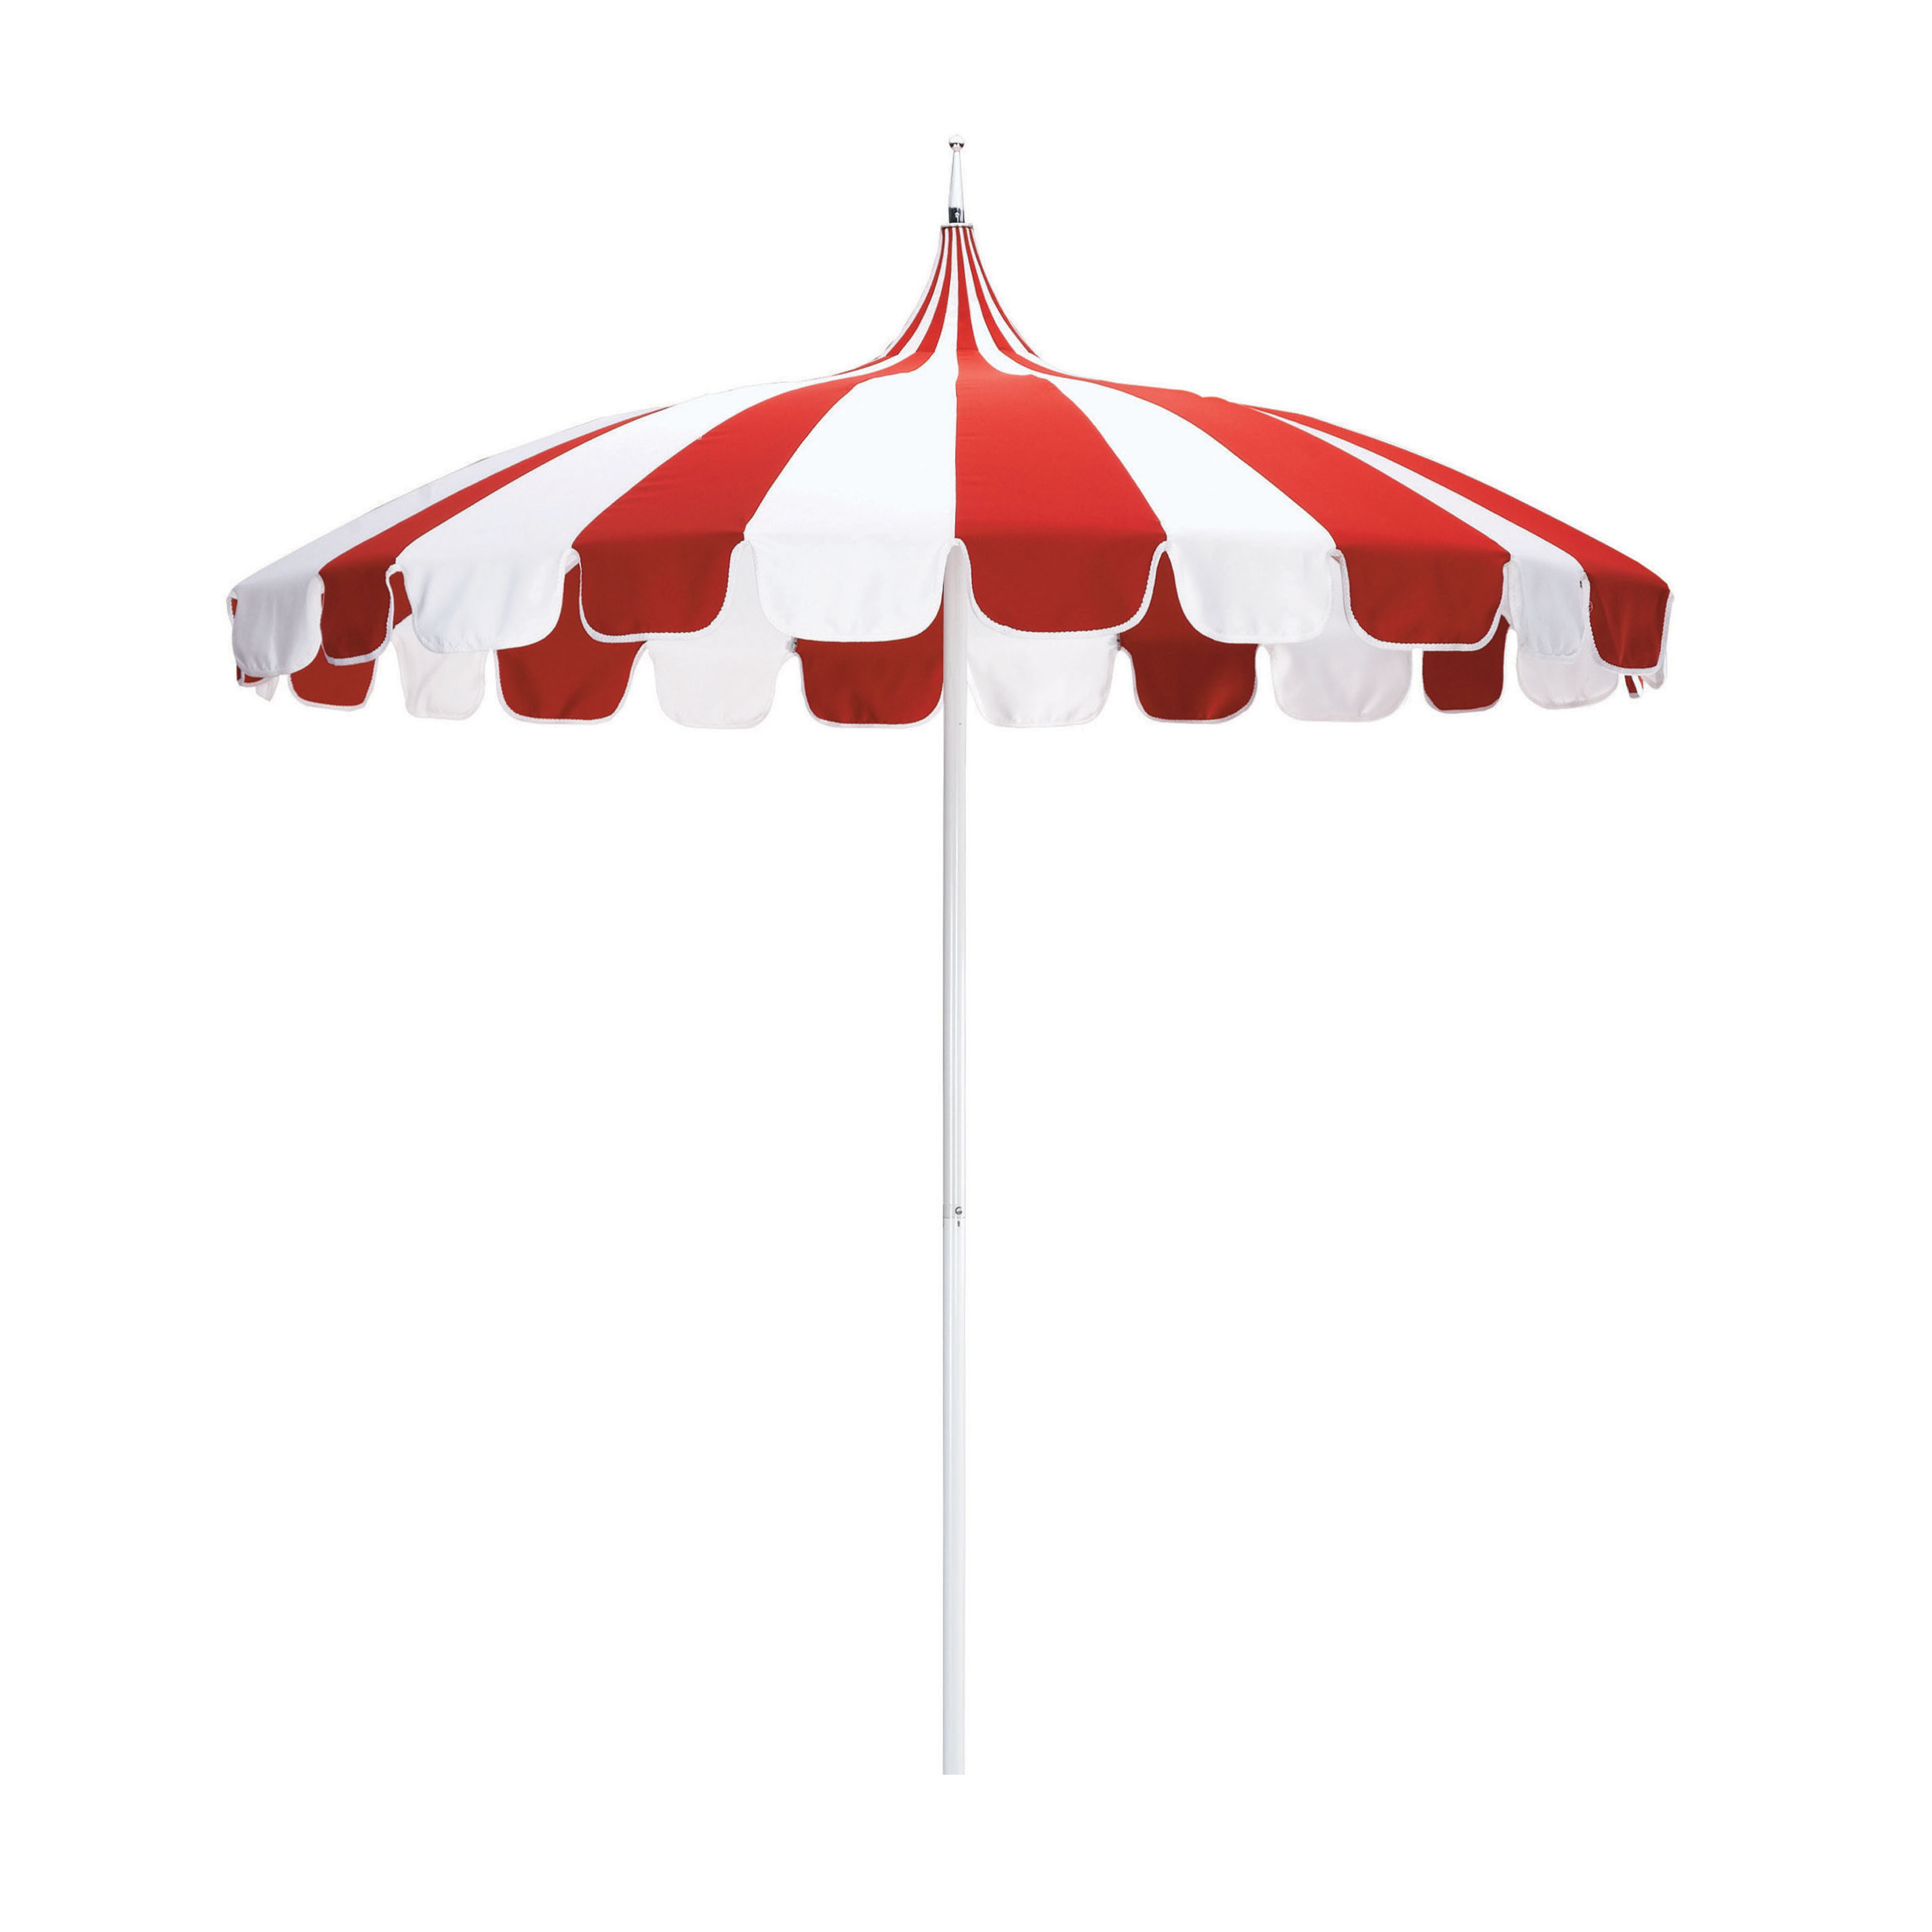 Exceptionnel 8.5u0027 Pagoda Umbrella ...